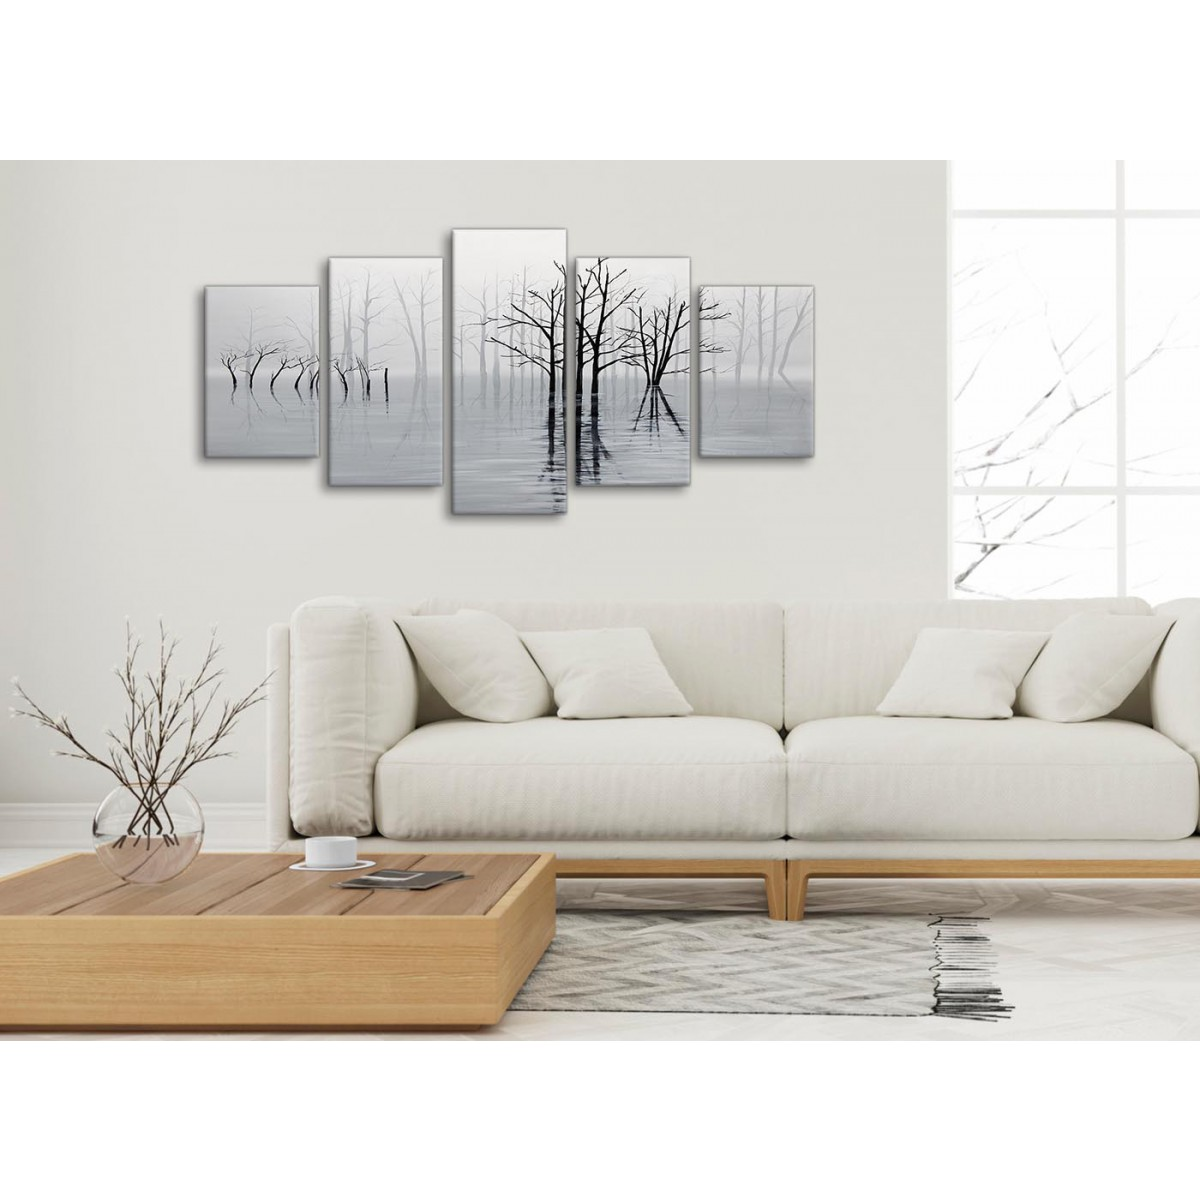 Bedroom Wall Art Trees 5 Panel Black White Grey Tree Landscape Painting Bedroom